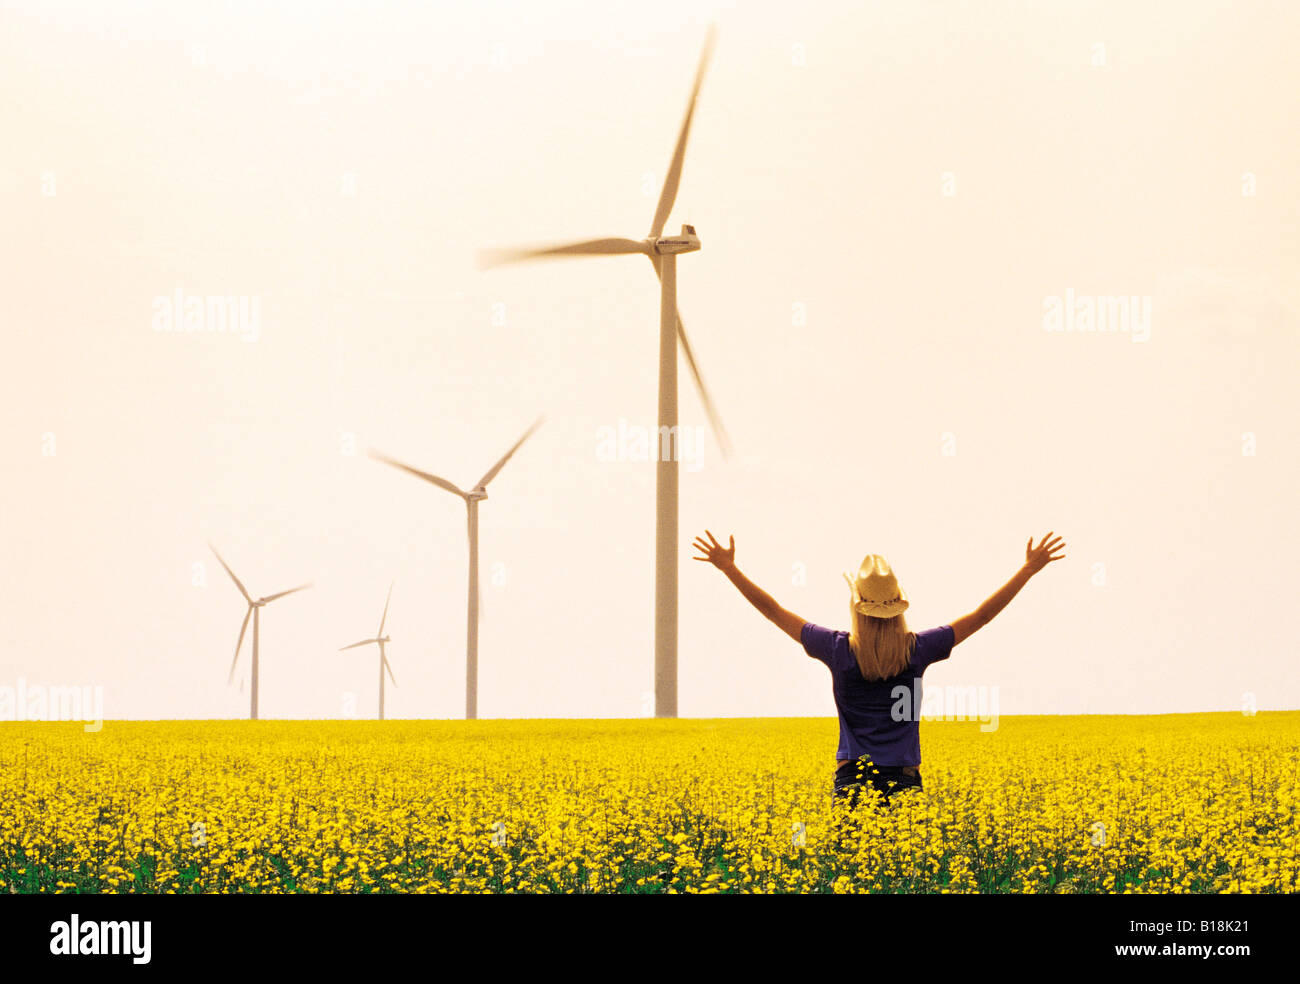 15 year old girl in canola field with wind turbines in the background, St. Leon, Manitoba, Canada - Stock Image